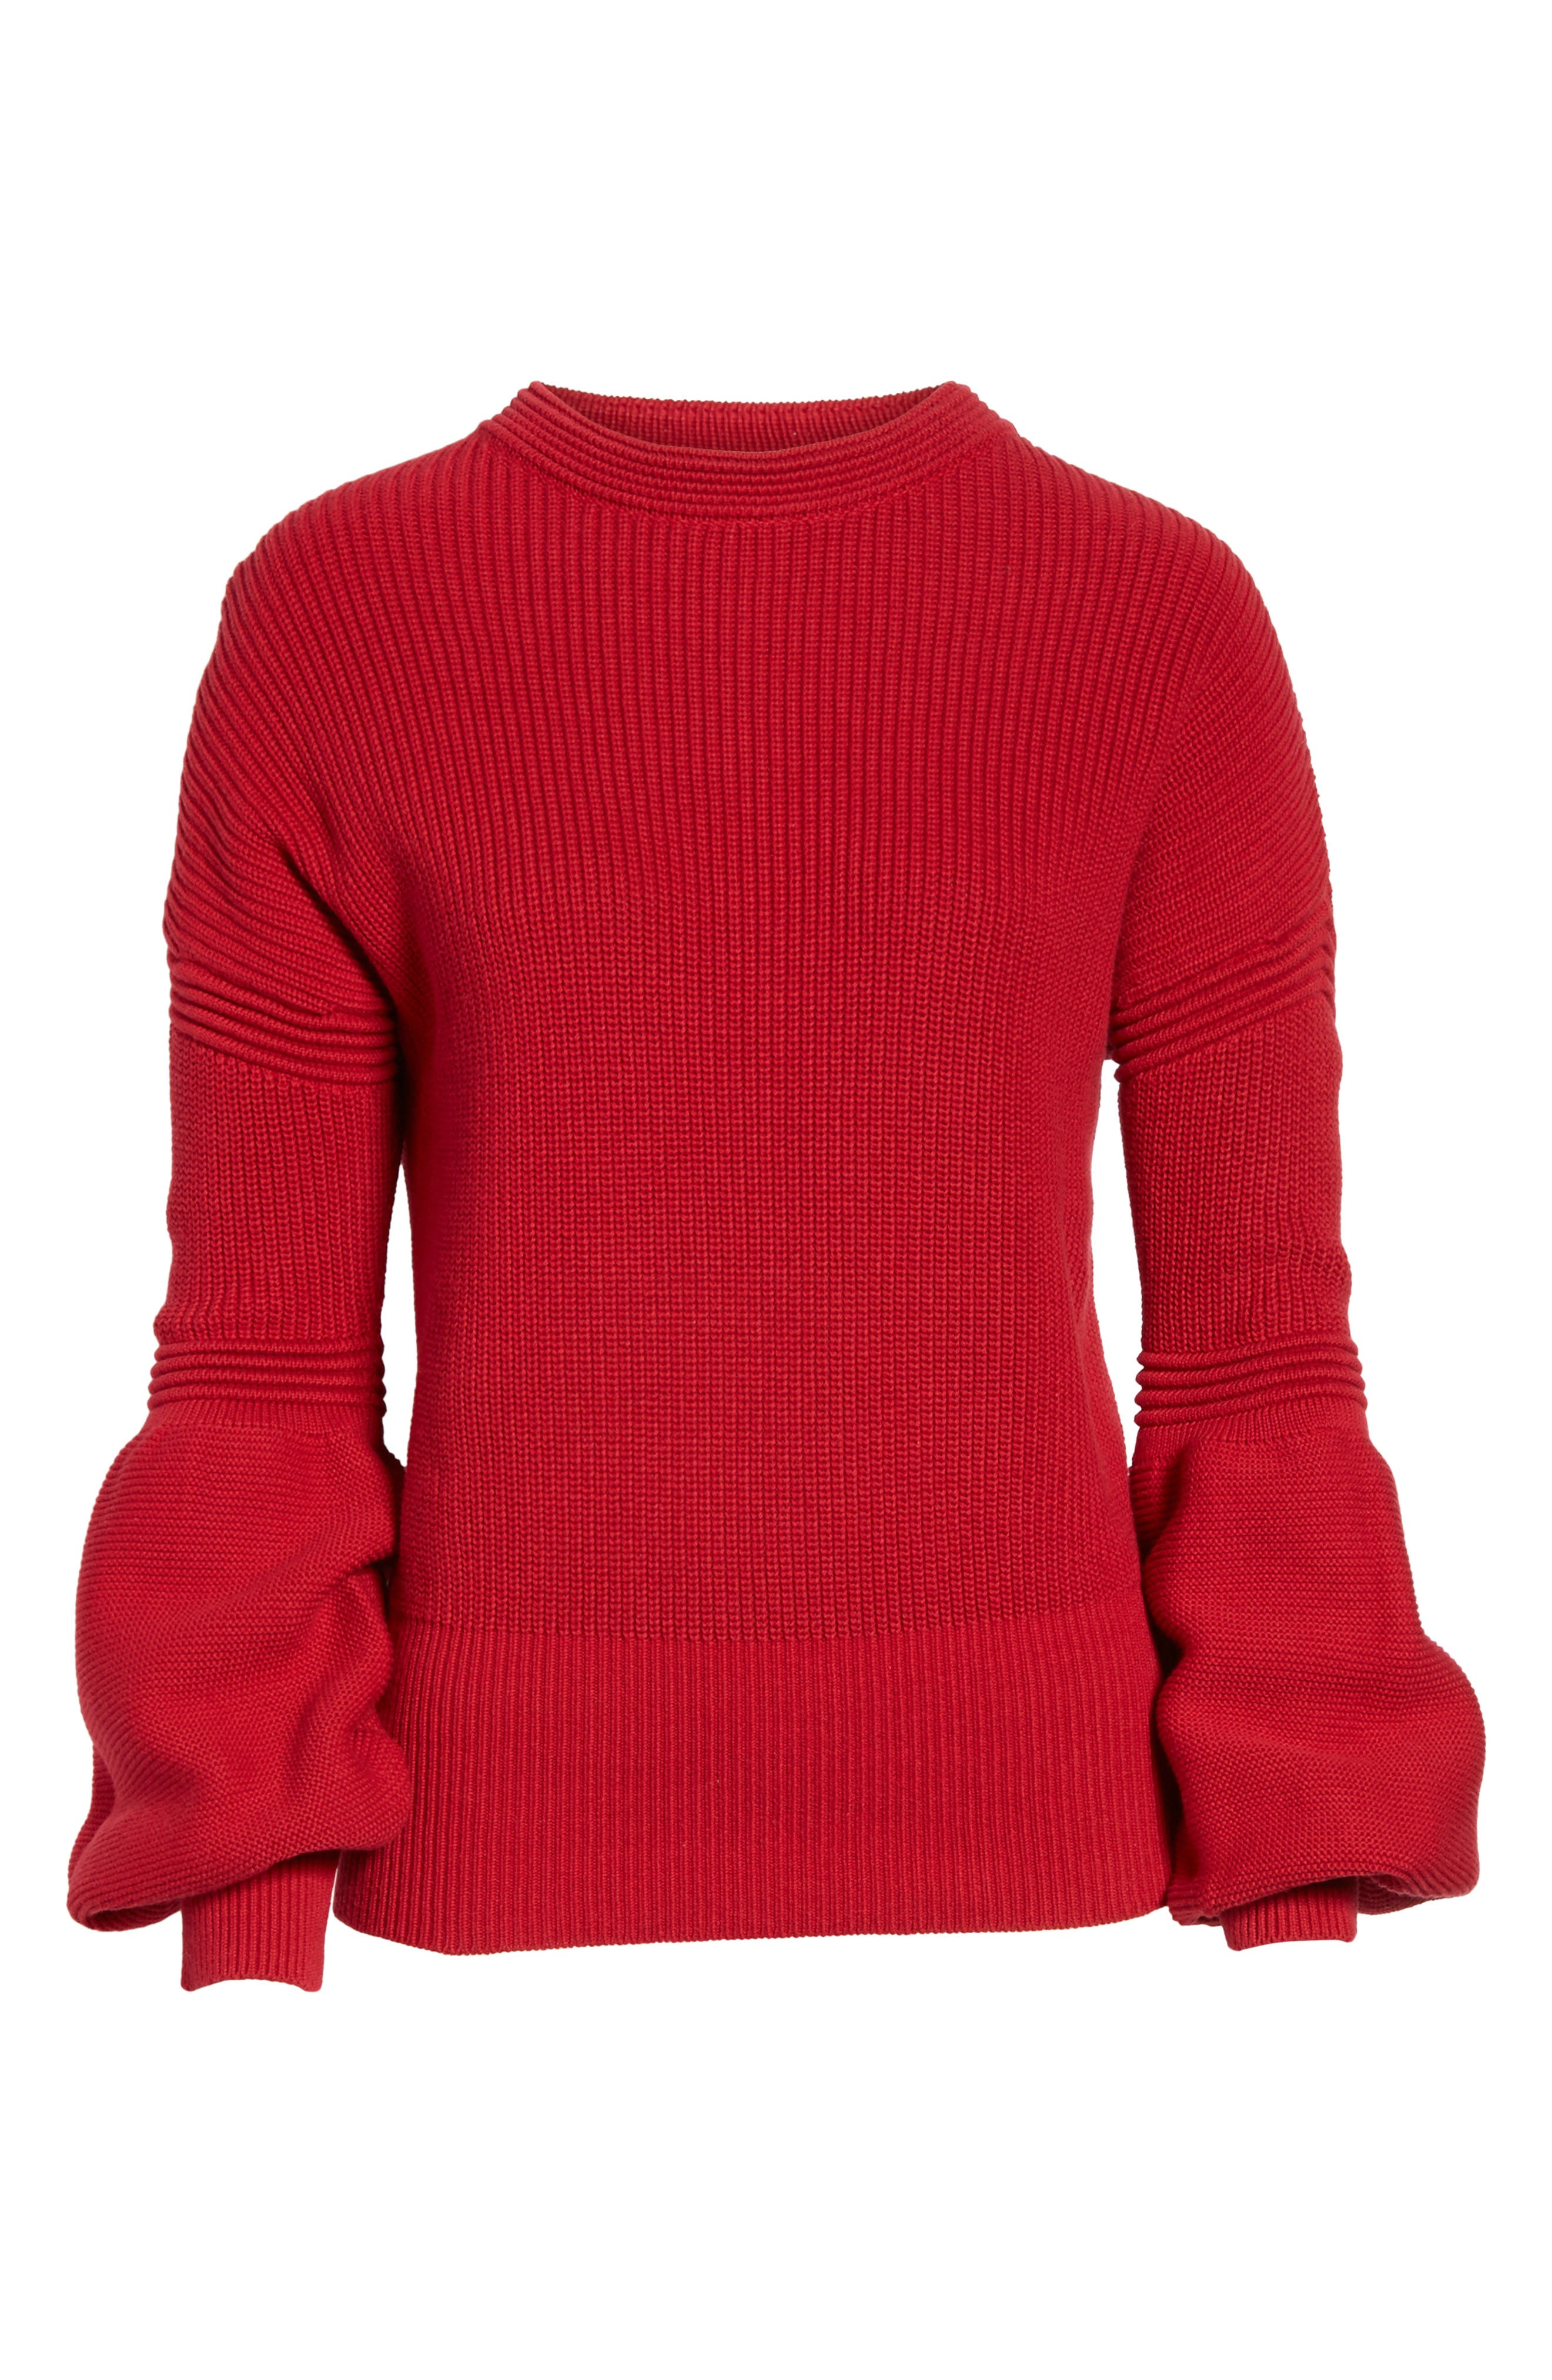 Sculpture Puff Sleeve Sweater,                             Alternate thumbnail 6, color,                             Red